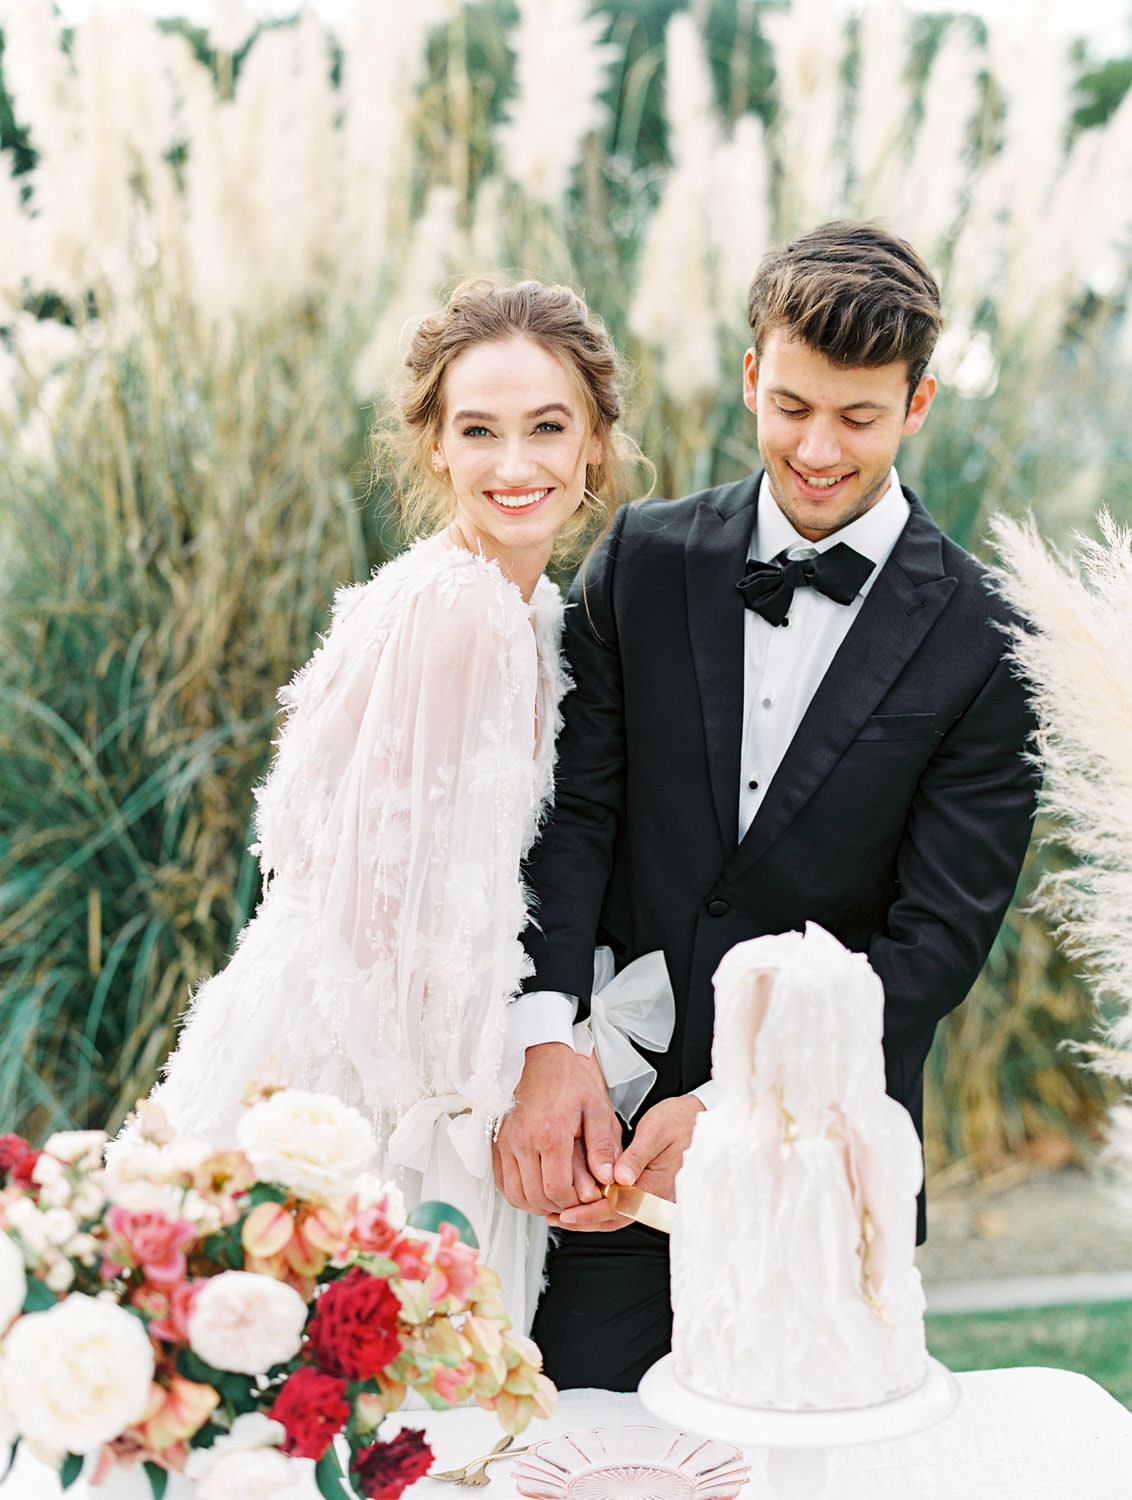 Bride in Marchesa Poppy gown and groom in The Black Tux cutting a textured white and blush two tier cake, Pampas Grass Wedding in San Diego on Film by Cavin Elizabeth Photography